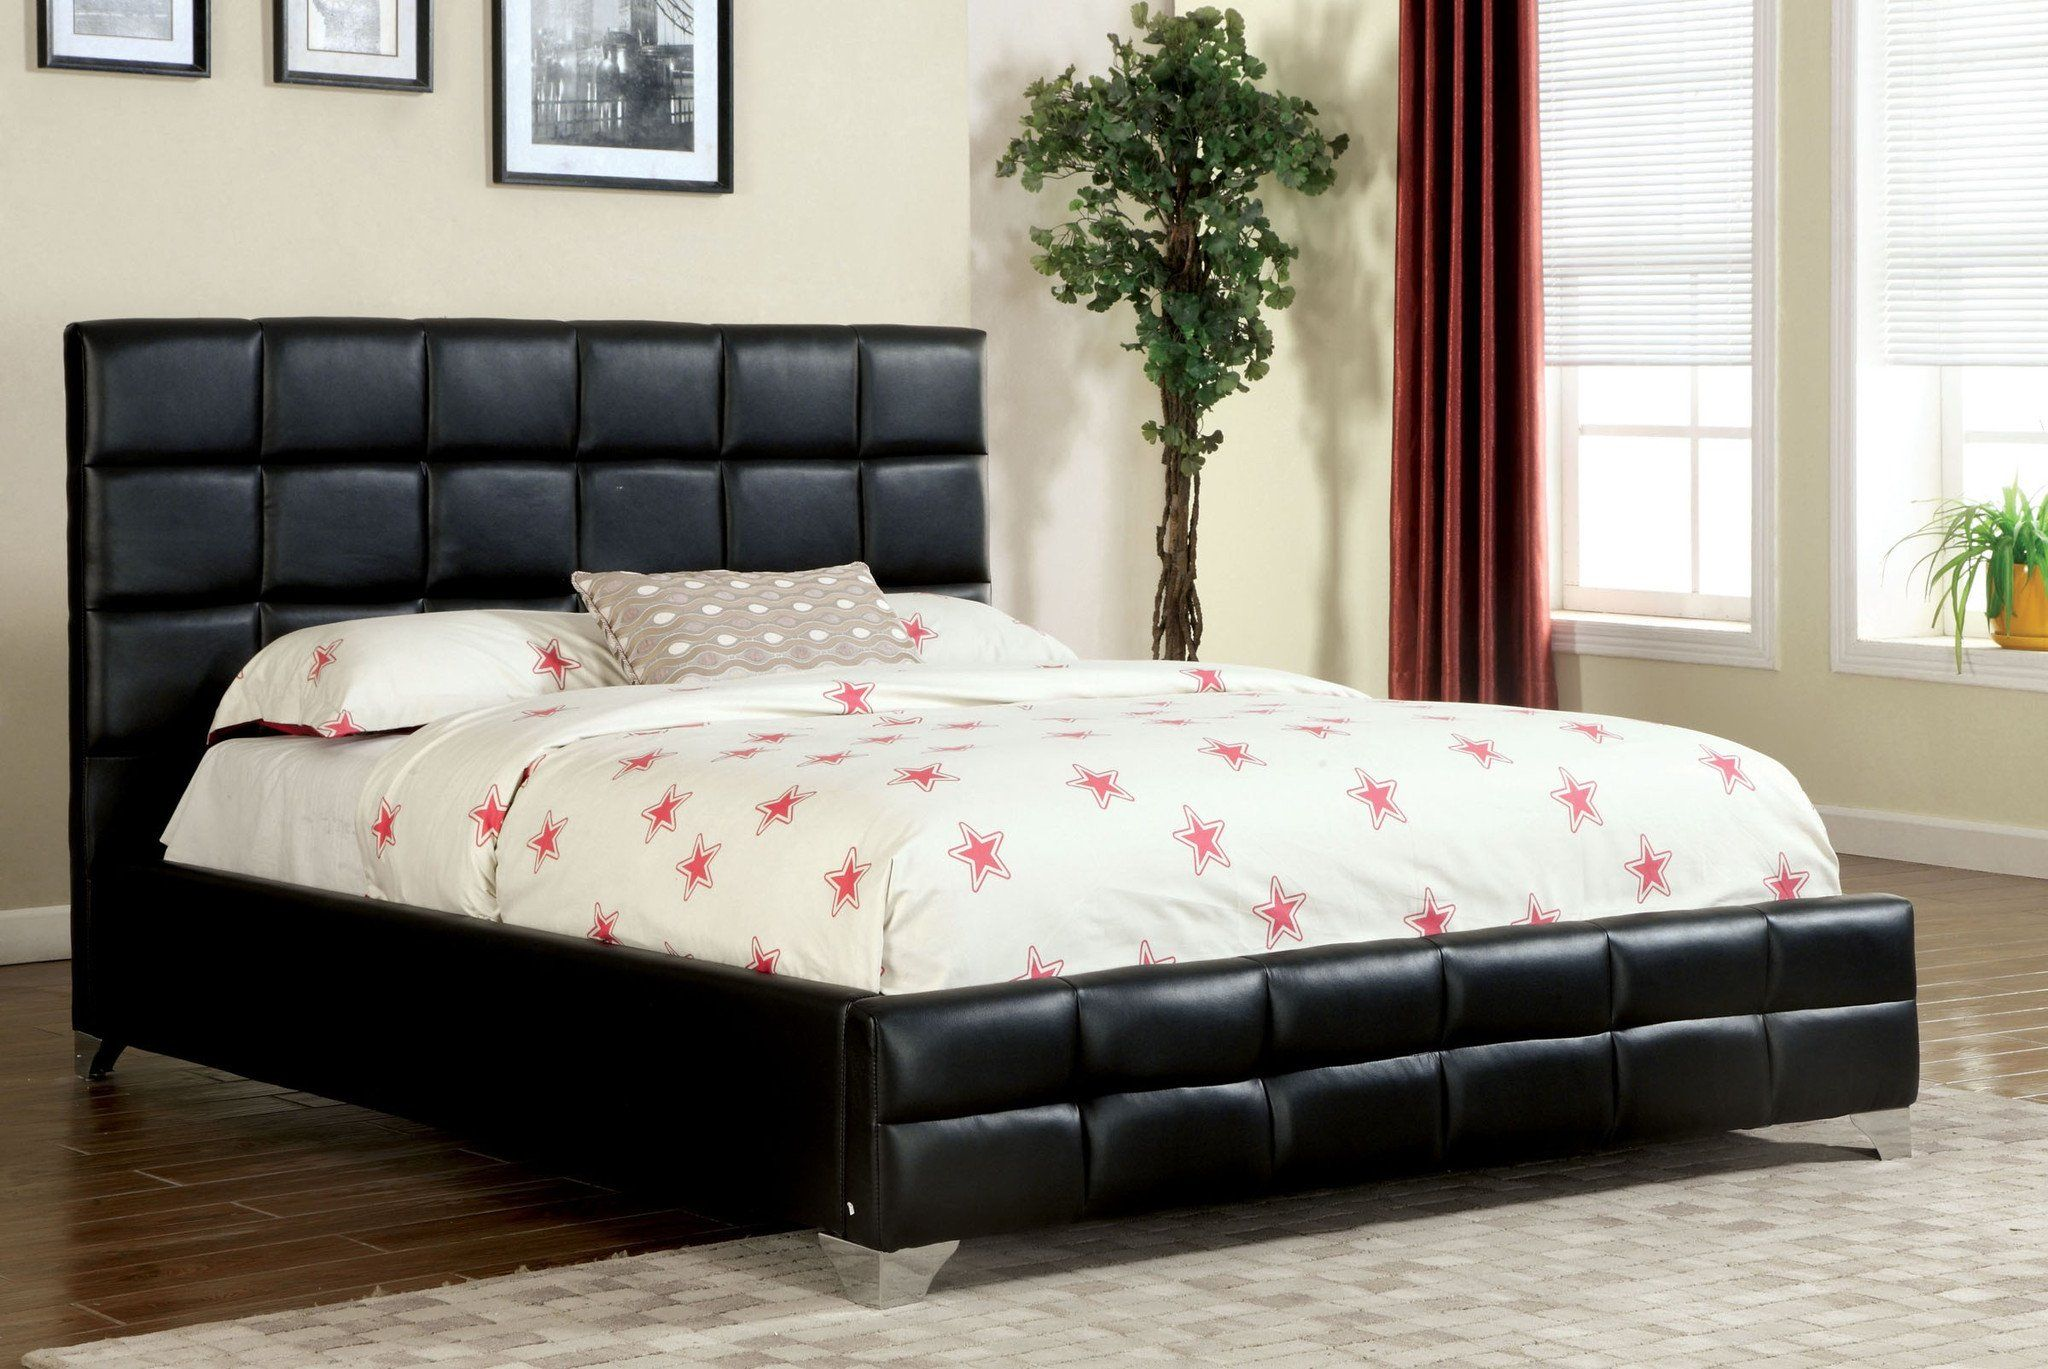 Boxspring And Mattress On Floor